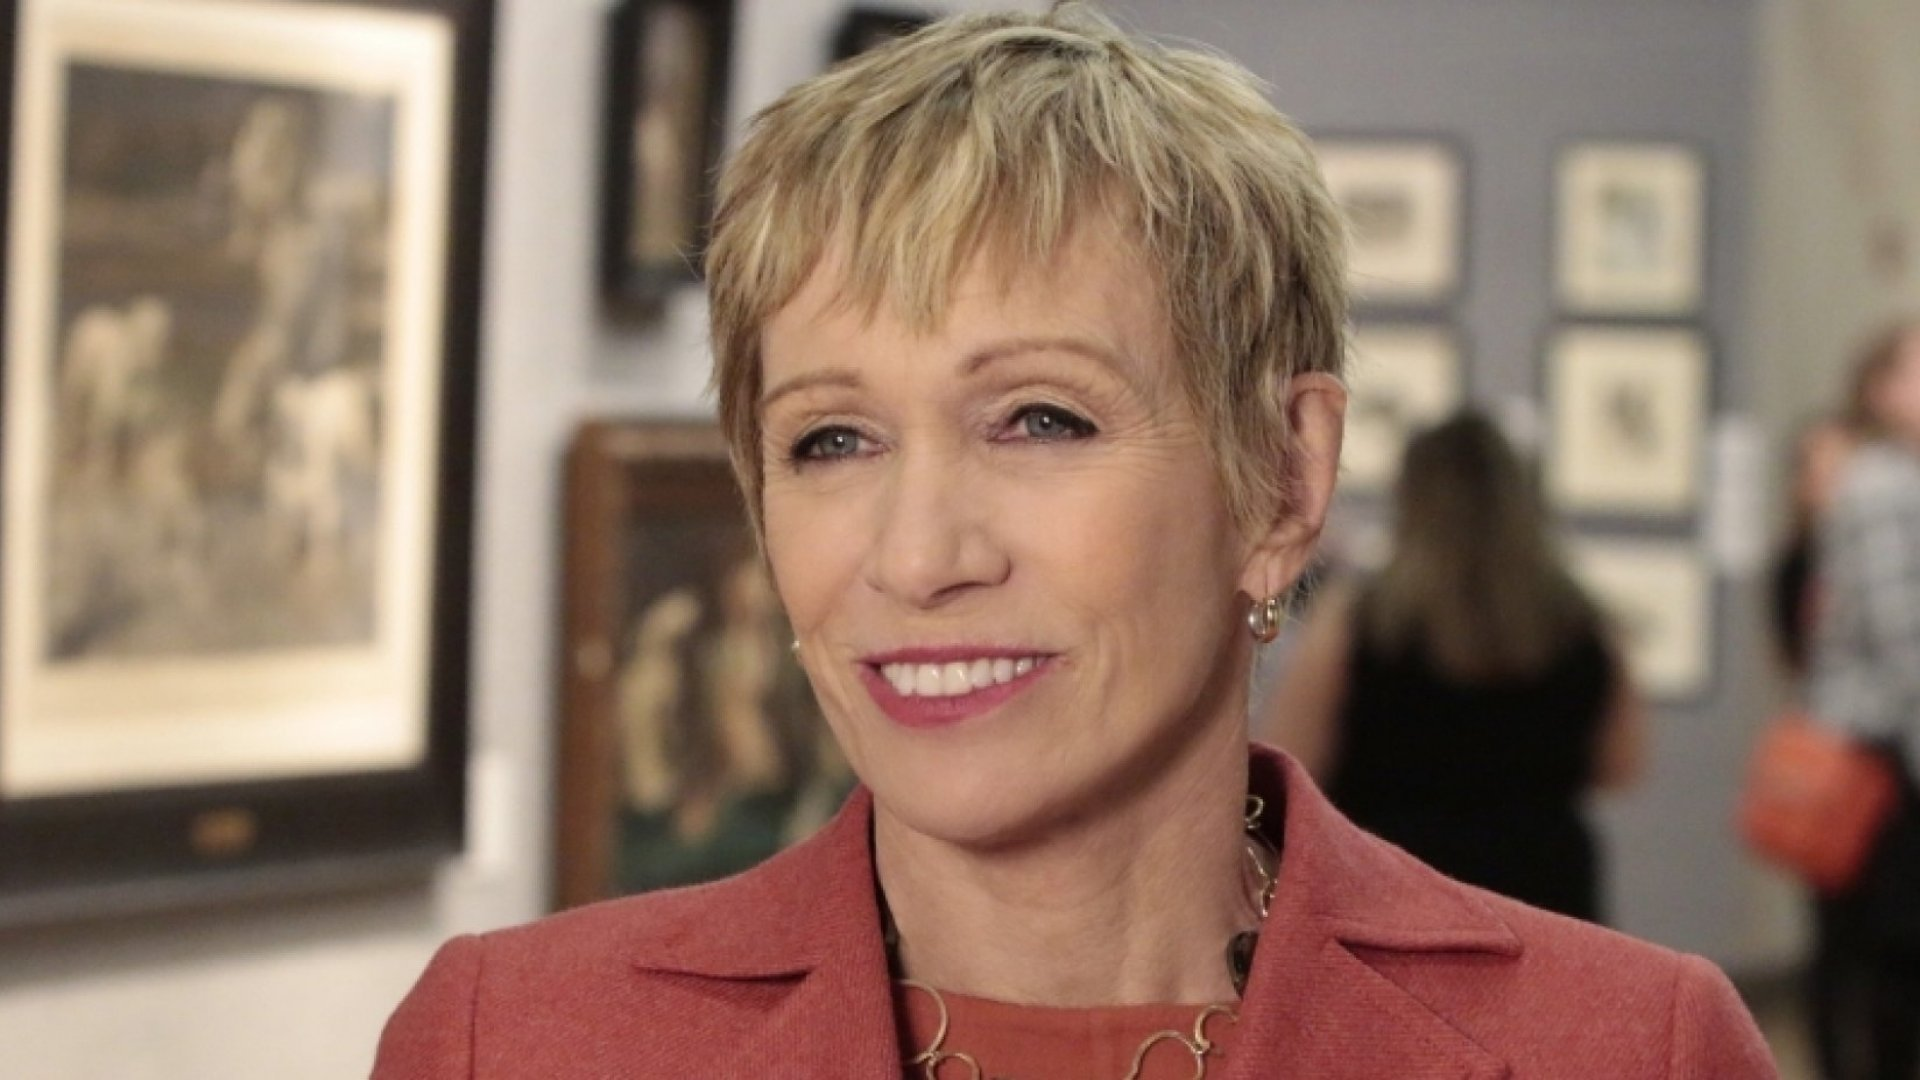 17 Extraordinarily Candid Observations From Shark Tank's Barbara Corcoran